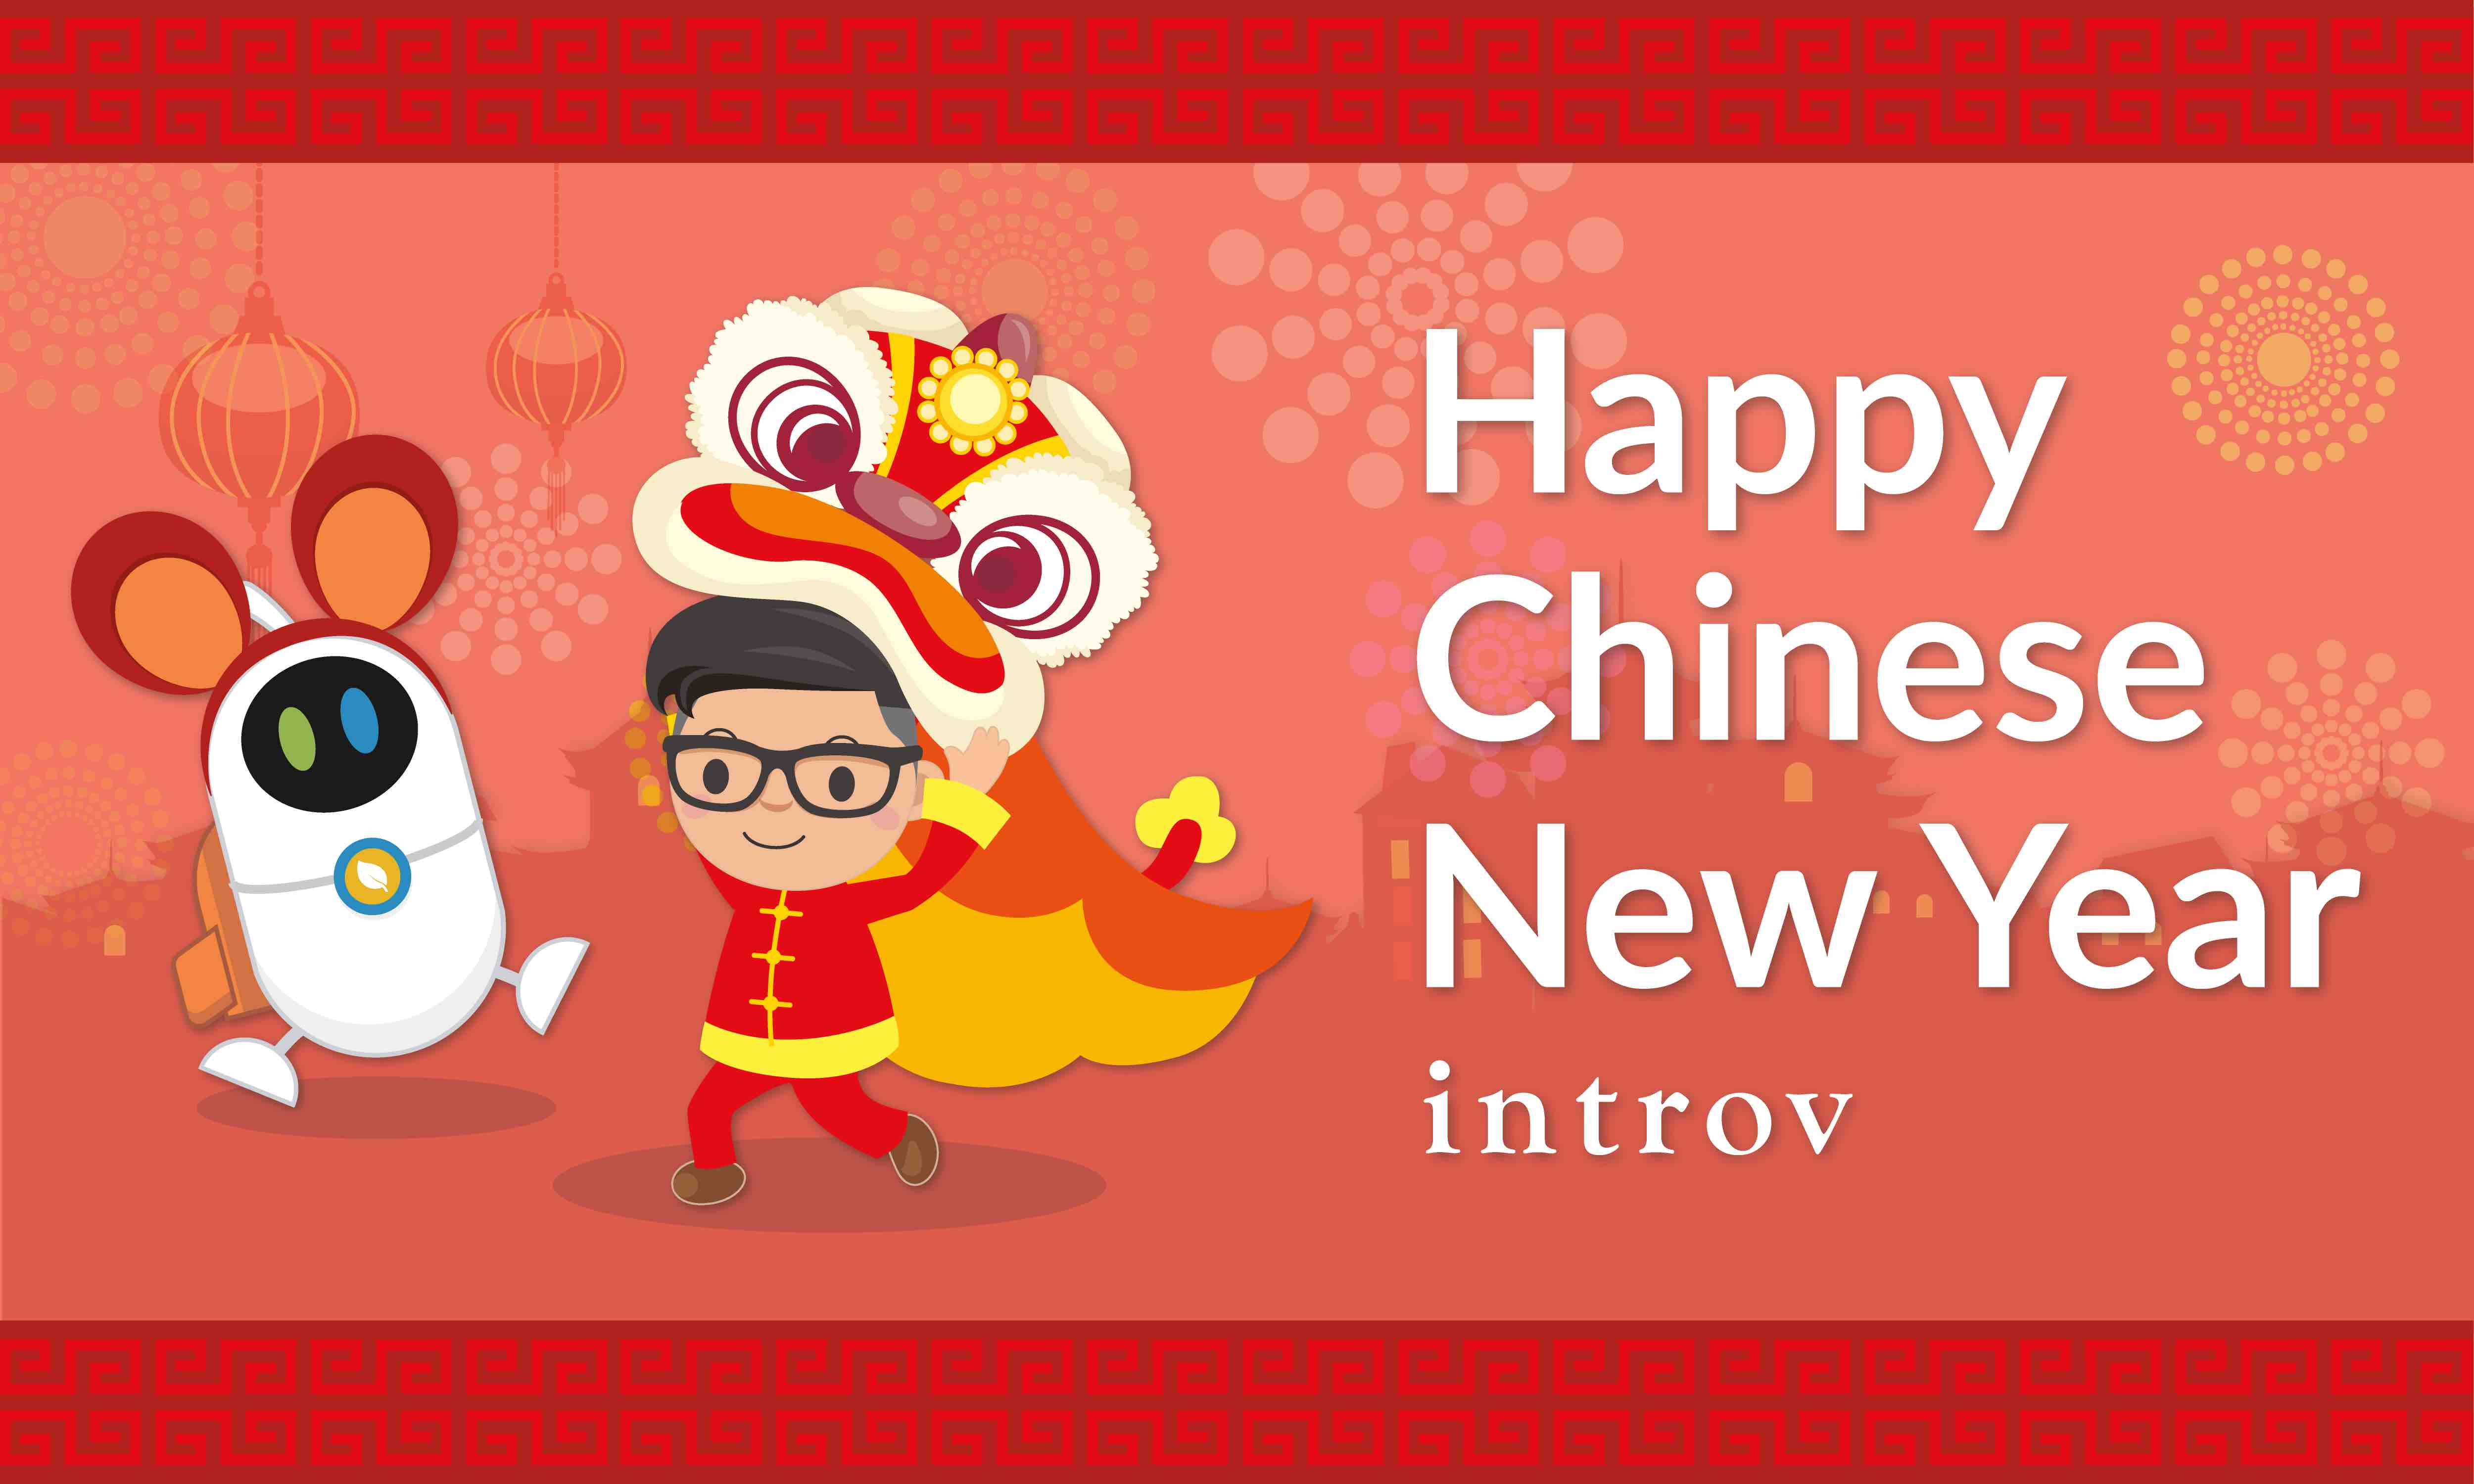 Wishing you a Happy Chinese New Year!